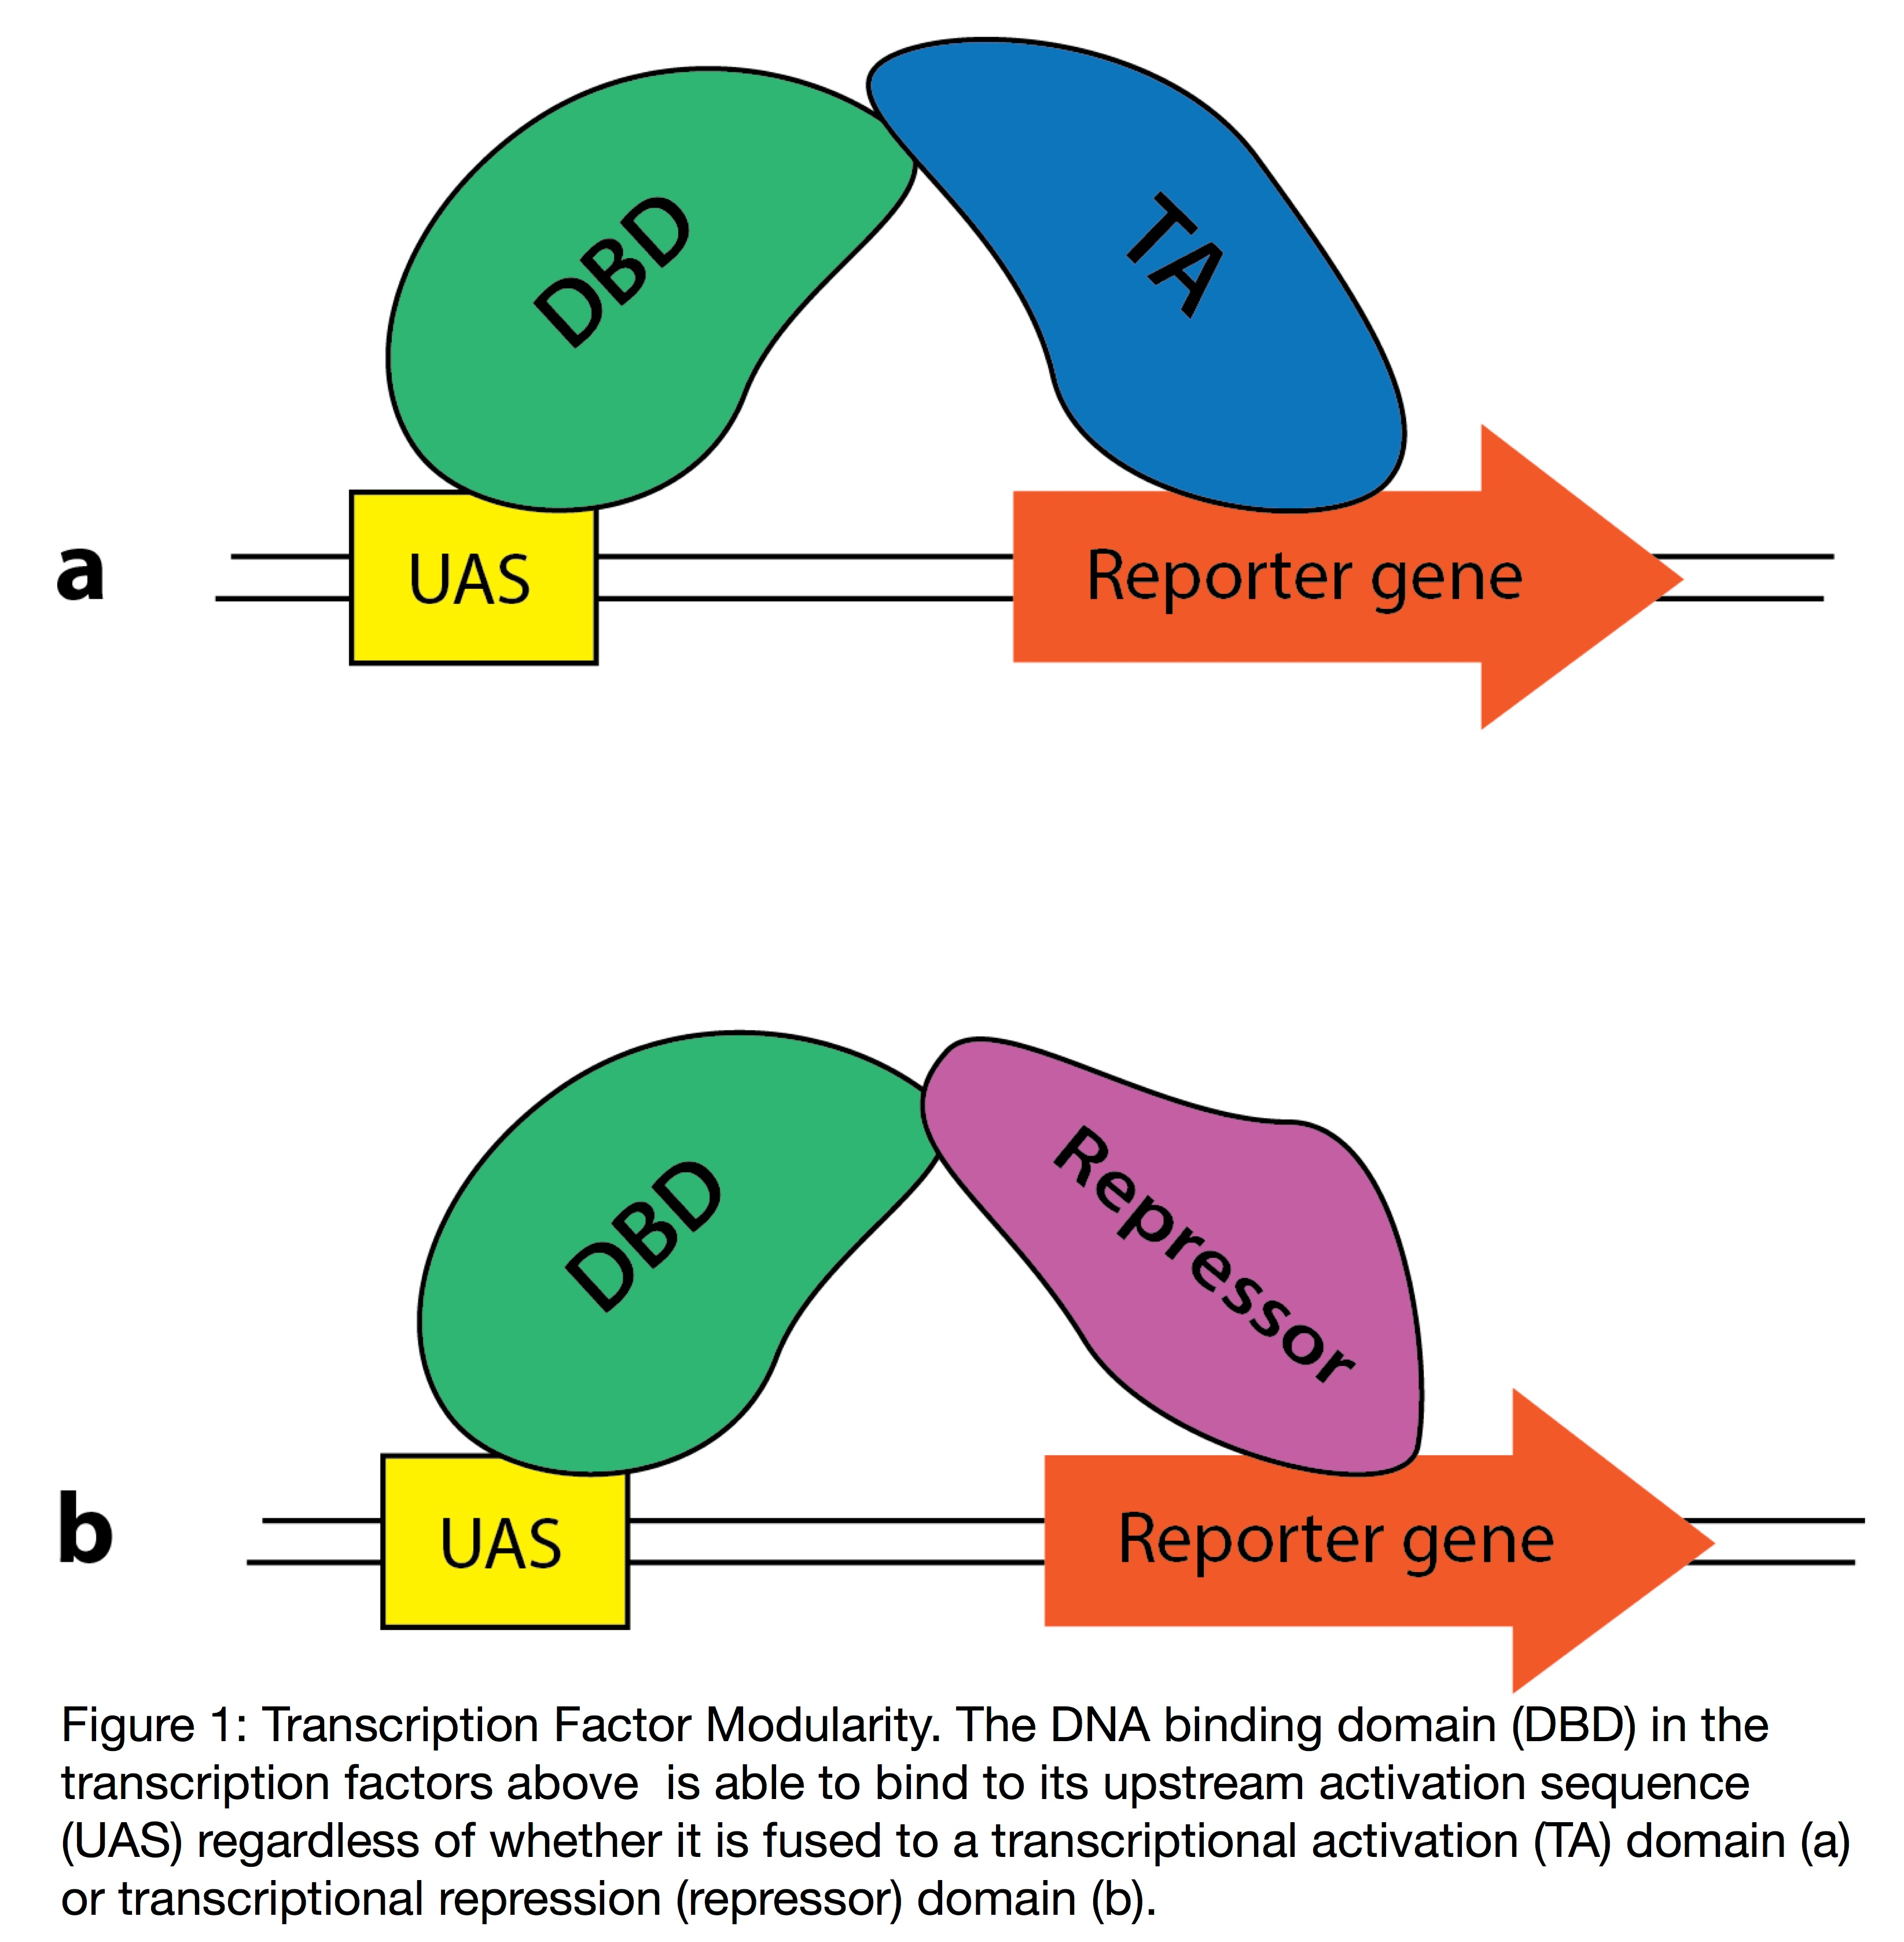 Transcription factor modularity